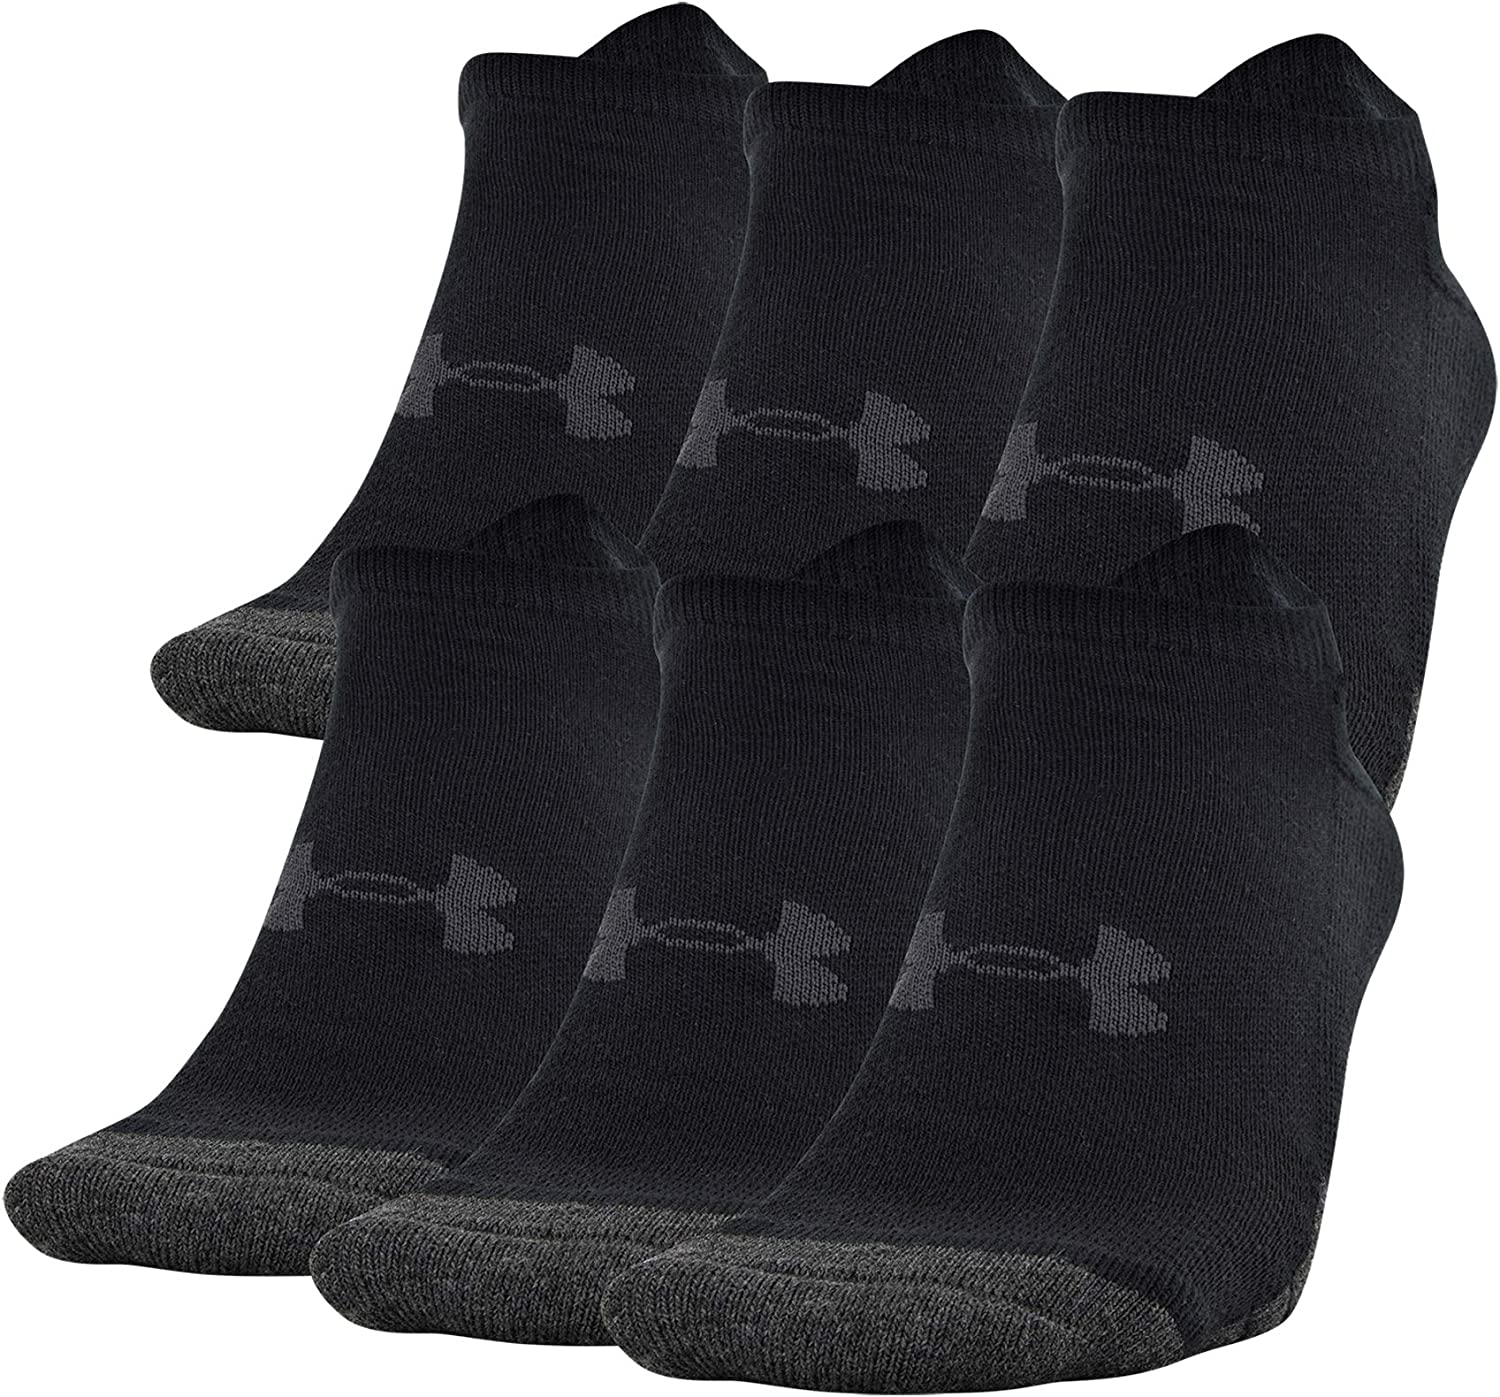 Under Armour Adult Performance Tech No Show Socks, 6-pairs: Clothing